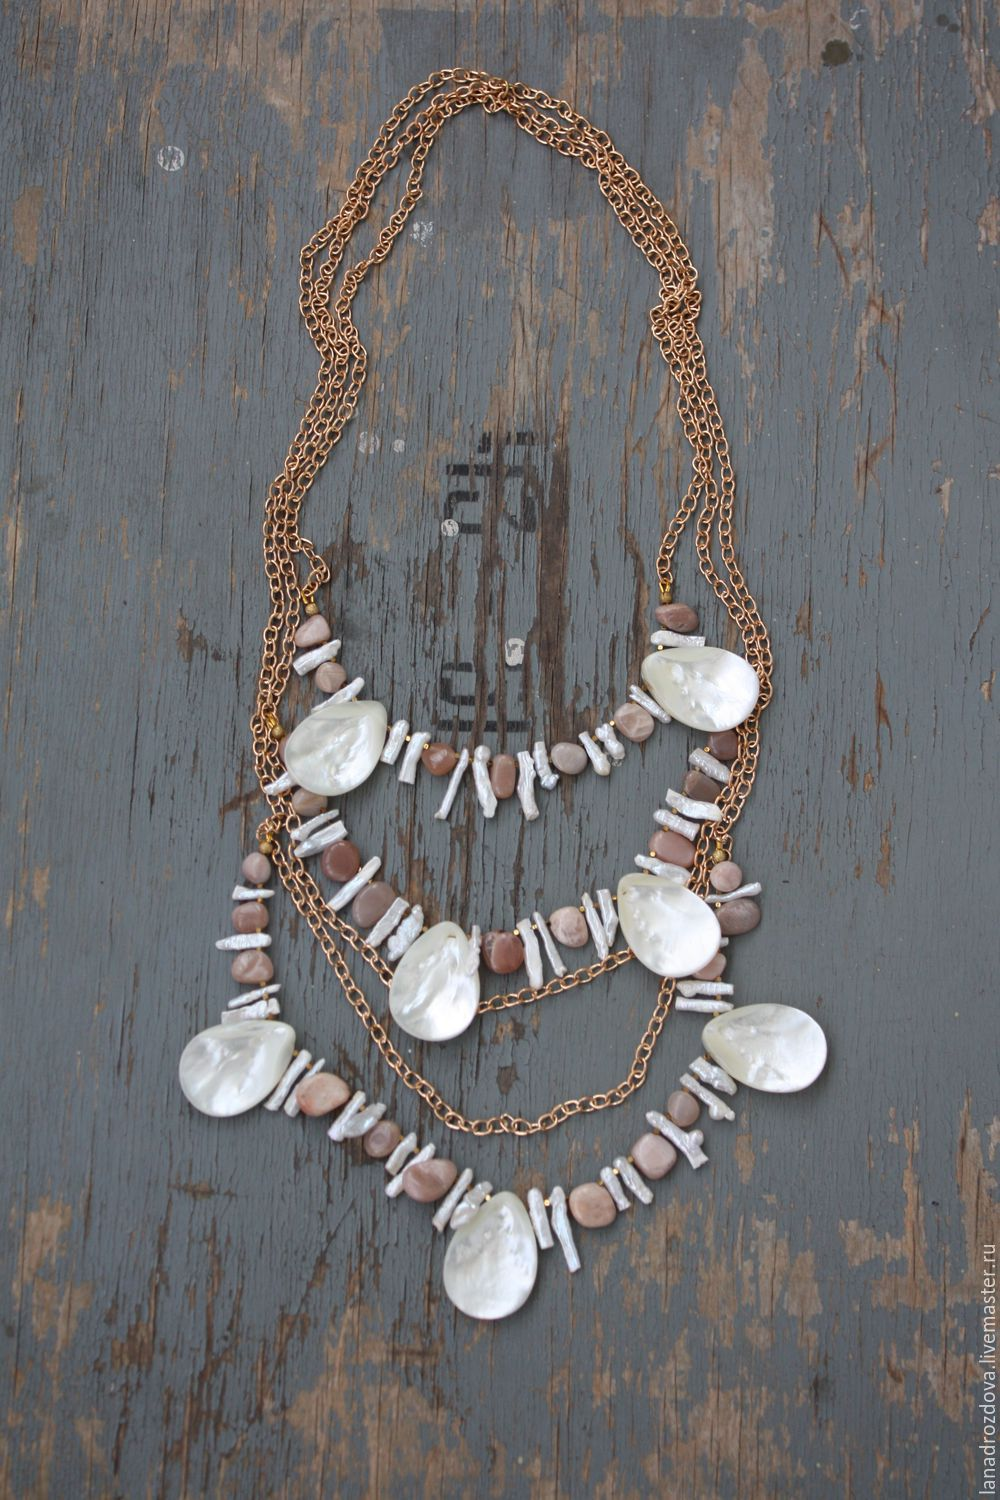 tiered beaded kantha vivaterra necklace